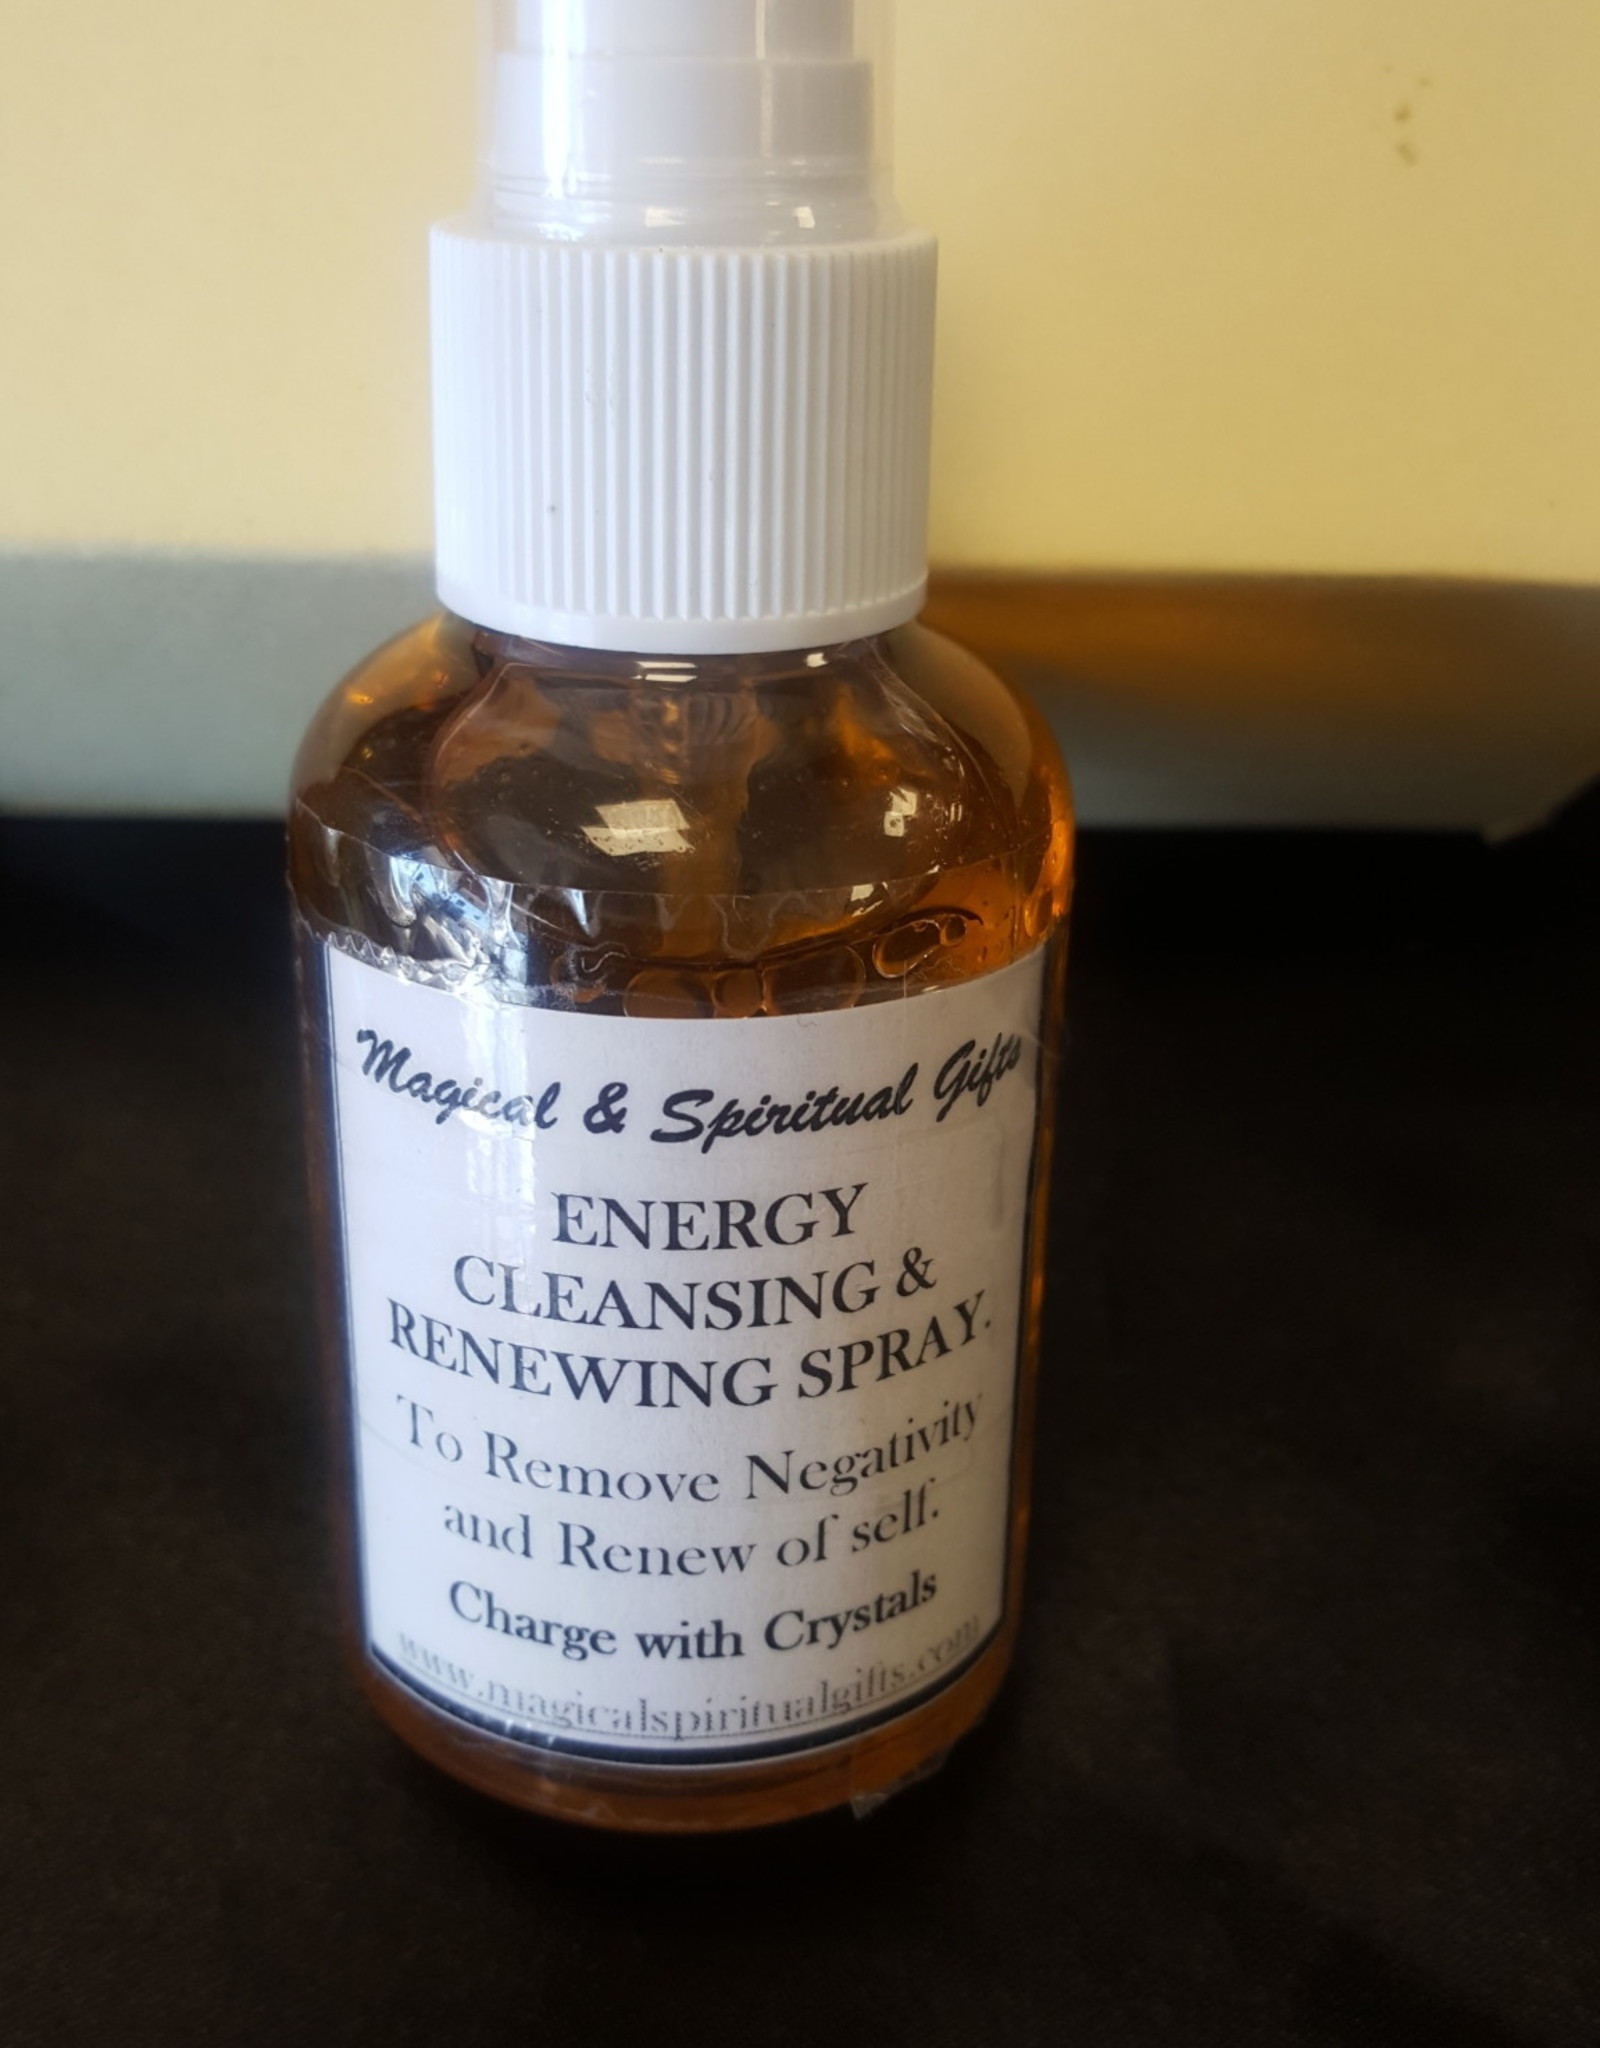 Energy Cleansing & Renewing Spary 2oz